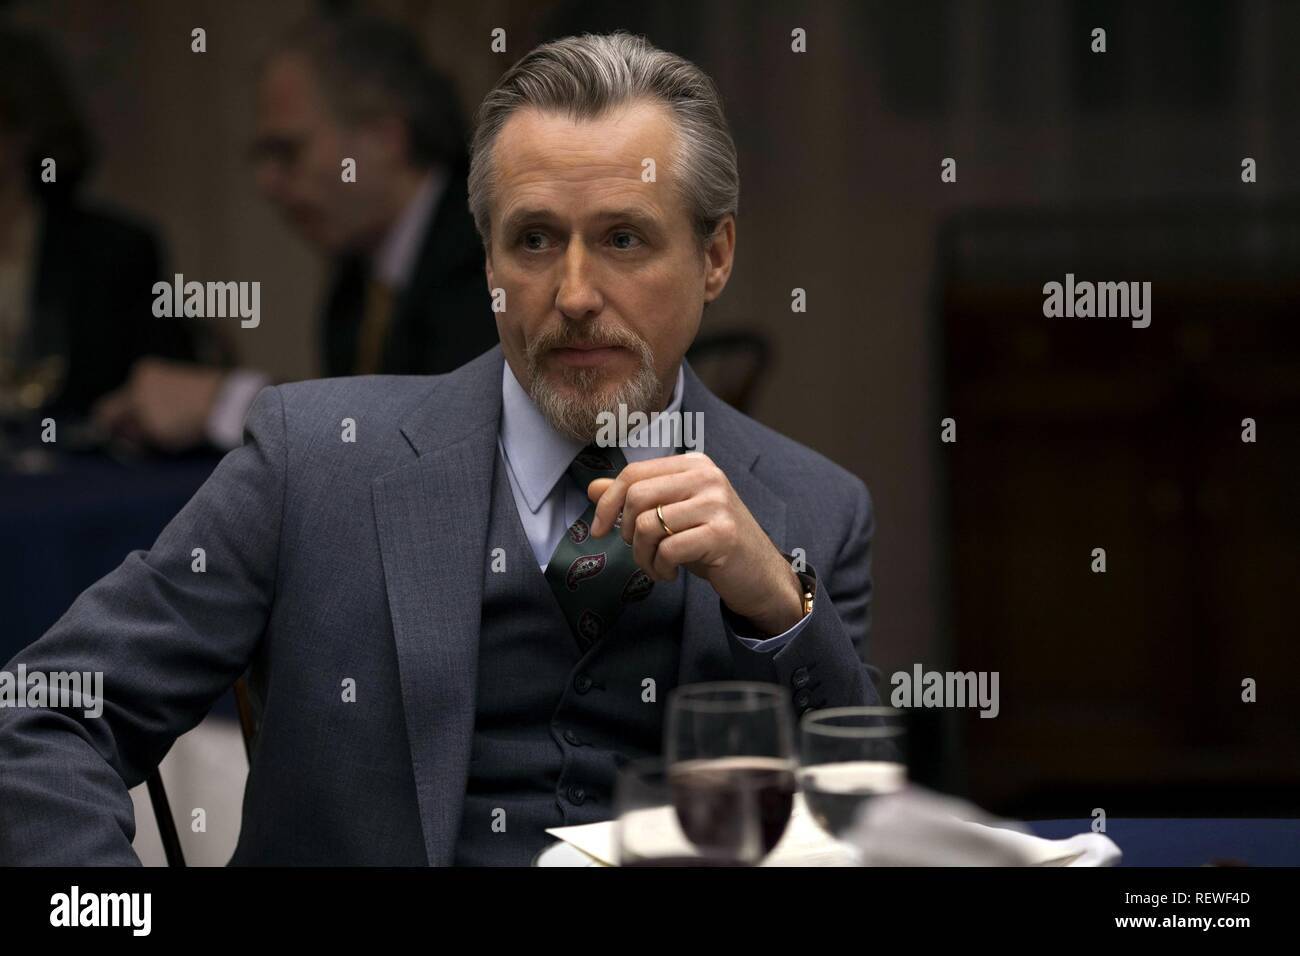 LINUS ROACHE BARRY (2016) - Stock Image